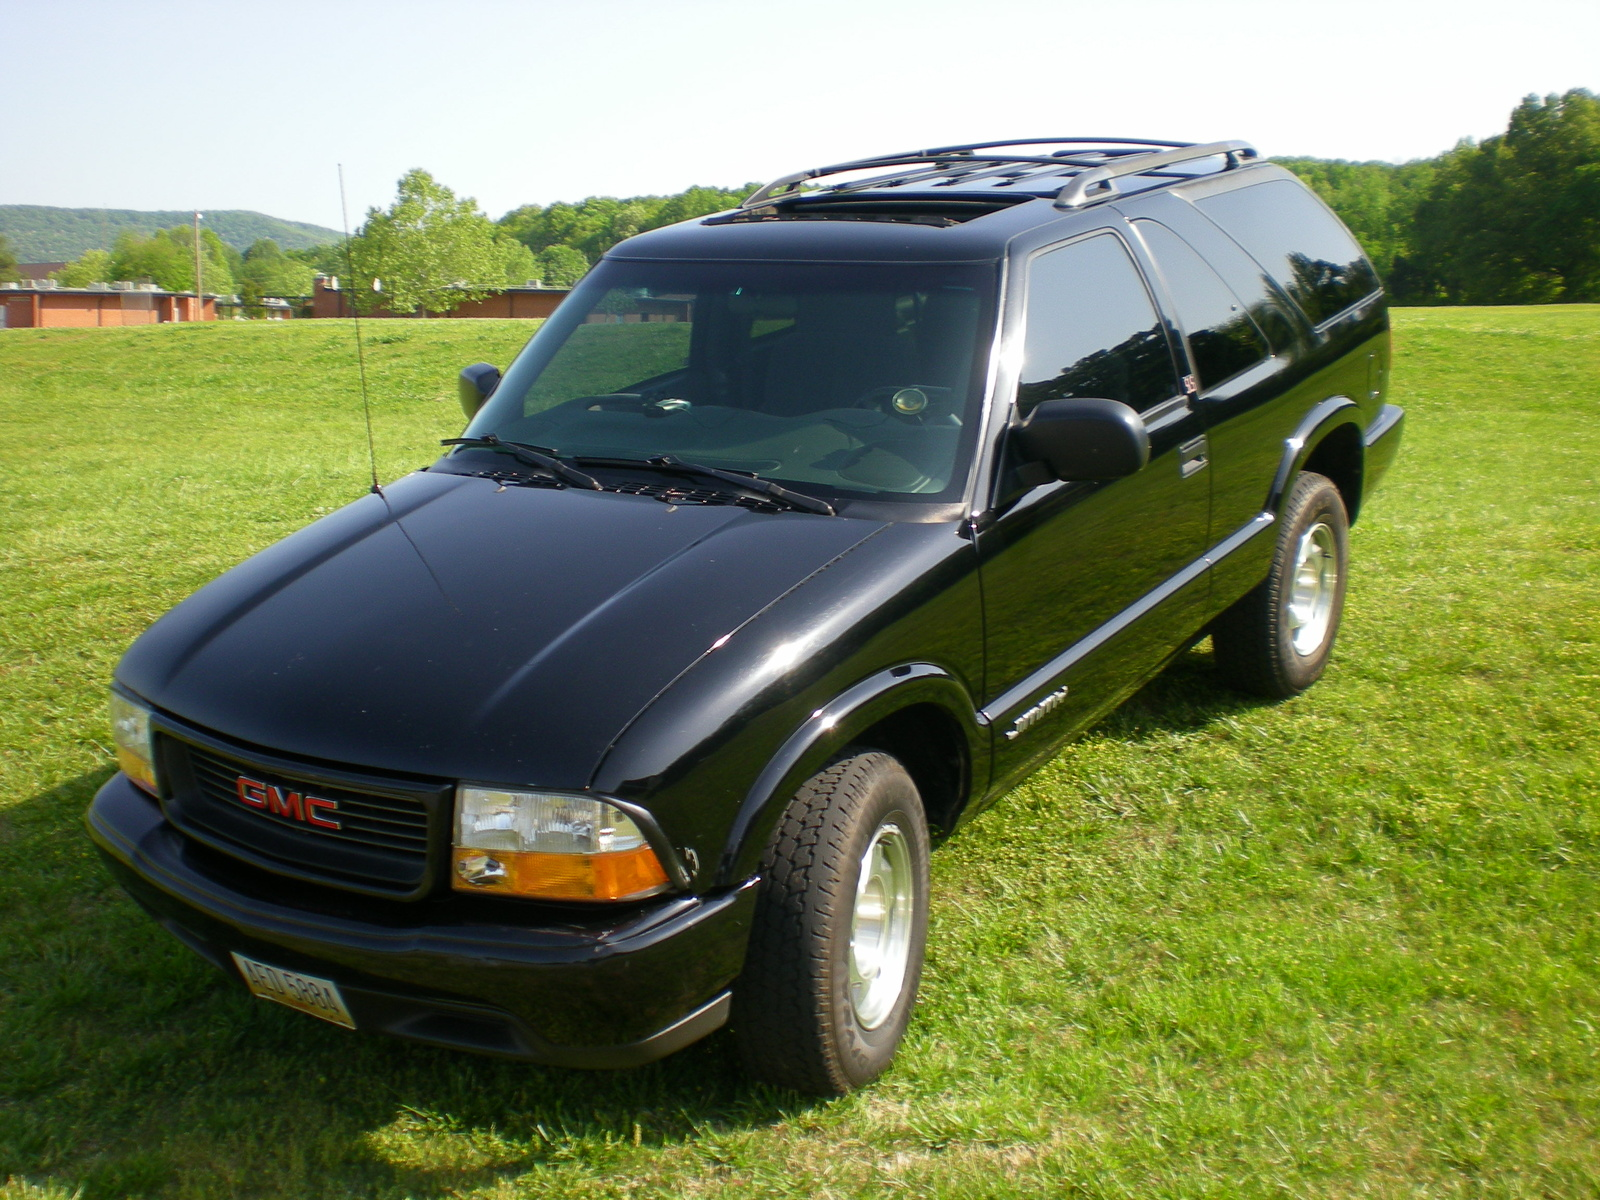 Picture of 2001 GMC Jimmy 2 Dr SLS SUV, exterior